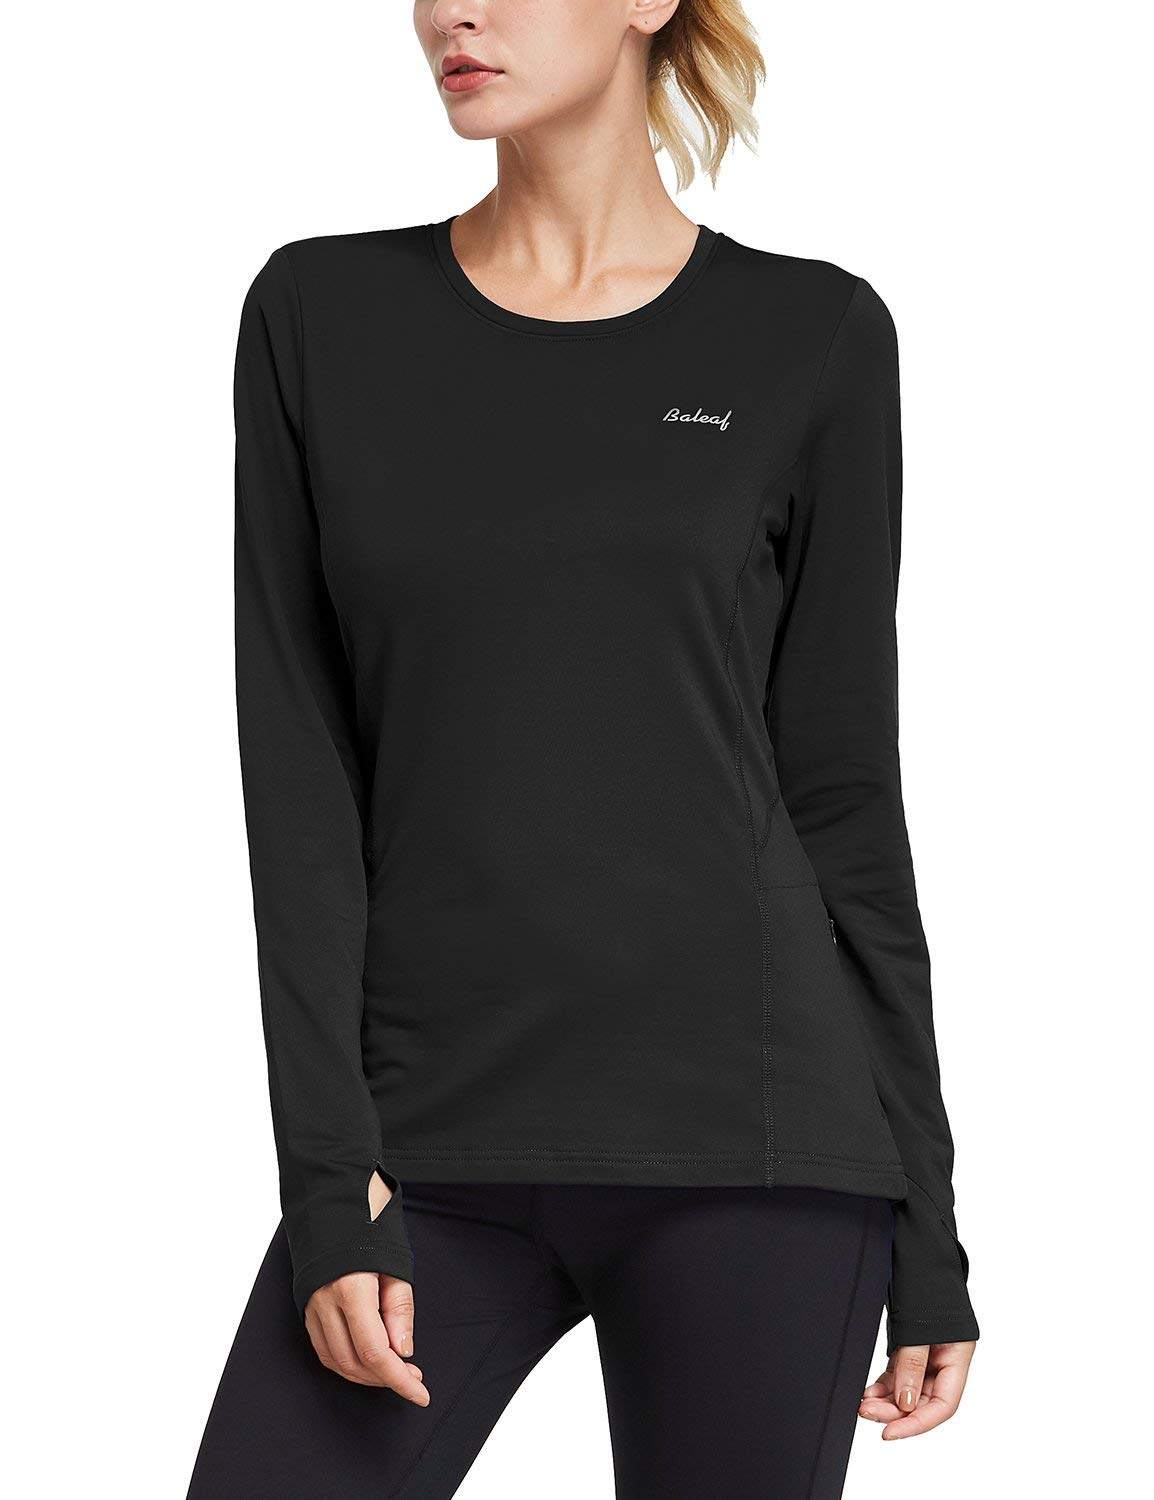 BALEAF Women's Thermal Fleece Tops Long Sleeve Running Shirt with Thumbholes Zipper Pocket Black Size S by BALEAF